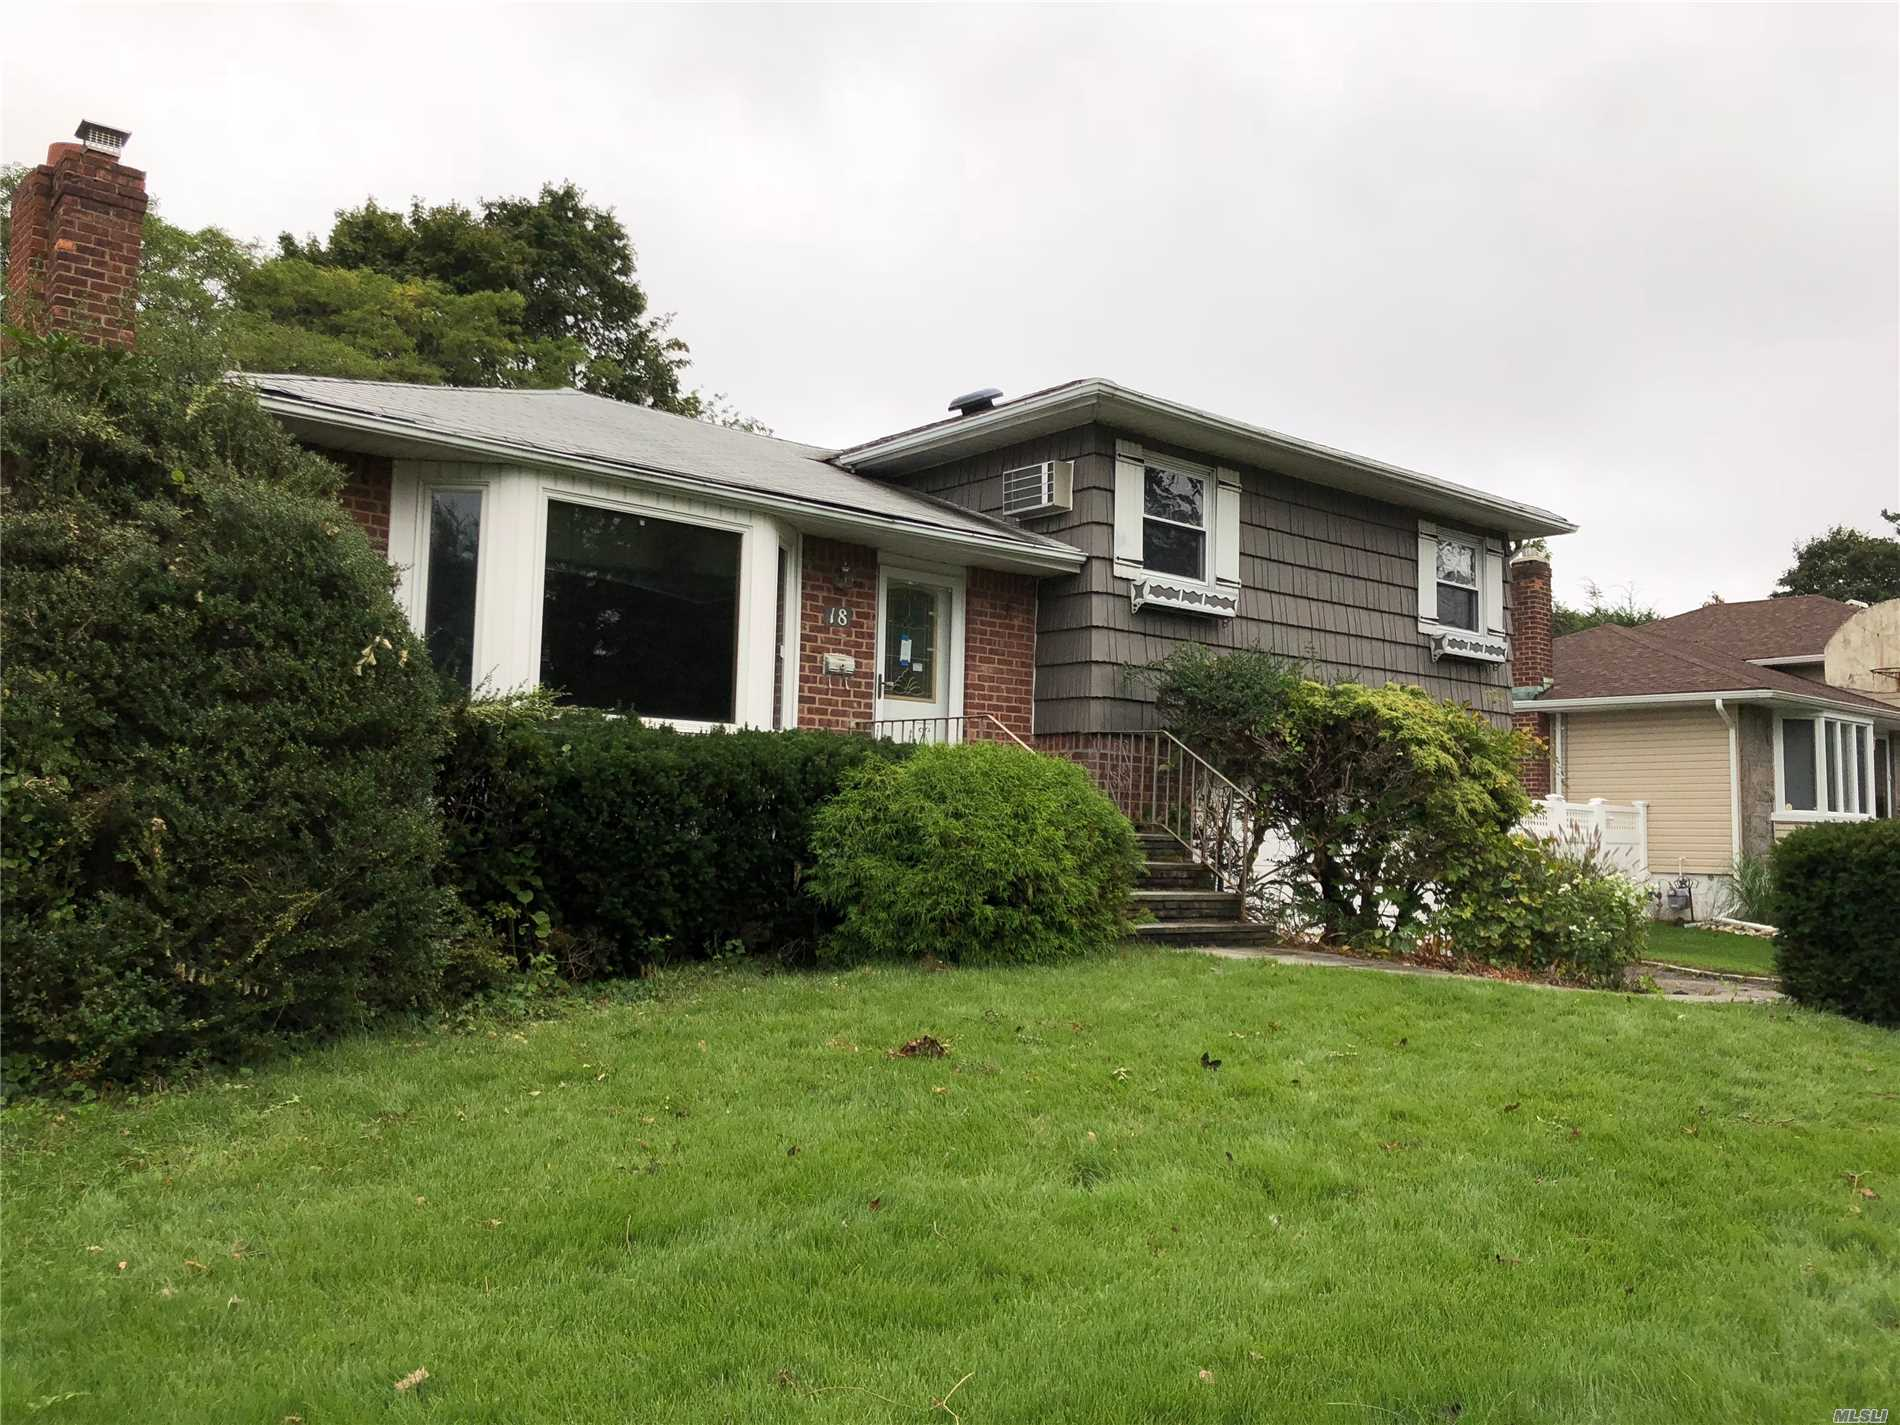 Plainview. Located In The Woodbury Hills Section. Expanded Split Level. This Home Features 3 Bedrooms, 2.5 Bathrooms With A Full Finished Basement And Huge Living Room. Includes Vaulted Ceilings In The Eik And Den/Family Room. 2 Car Attached Garage, 2 Fireplaces.